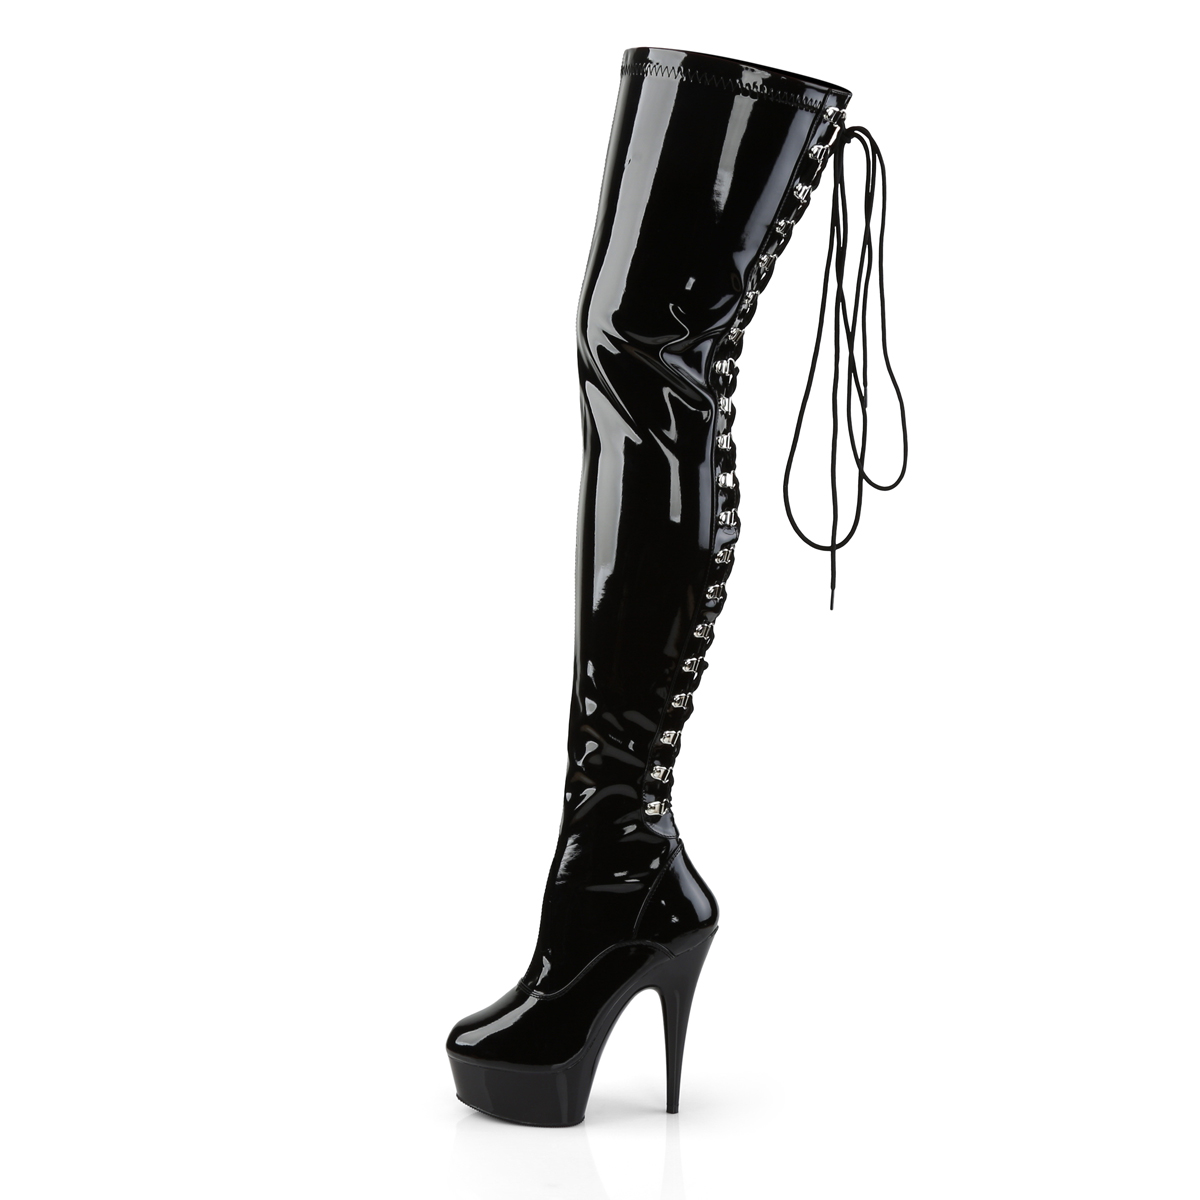 Pleaser DELIGHT - 3063 3063 3063 | Outlet Online Store